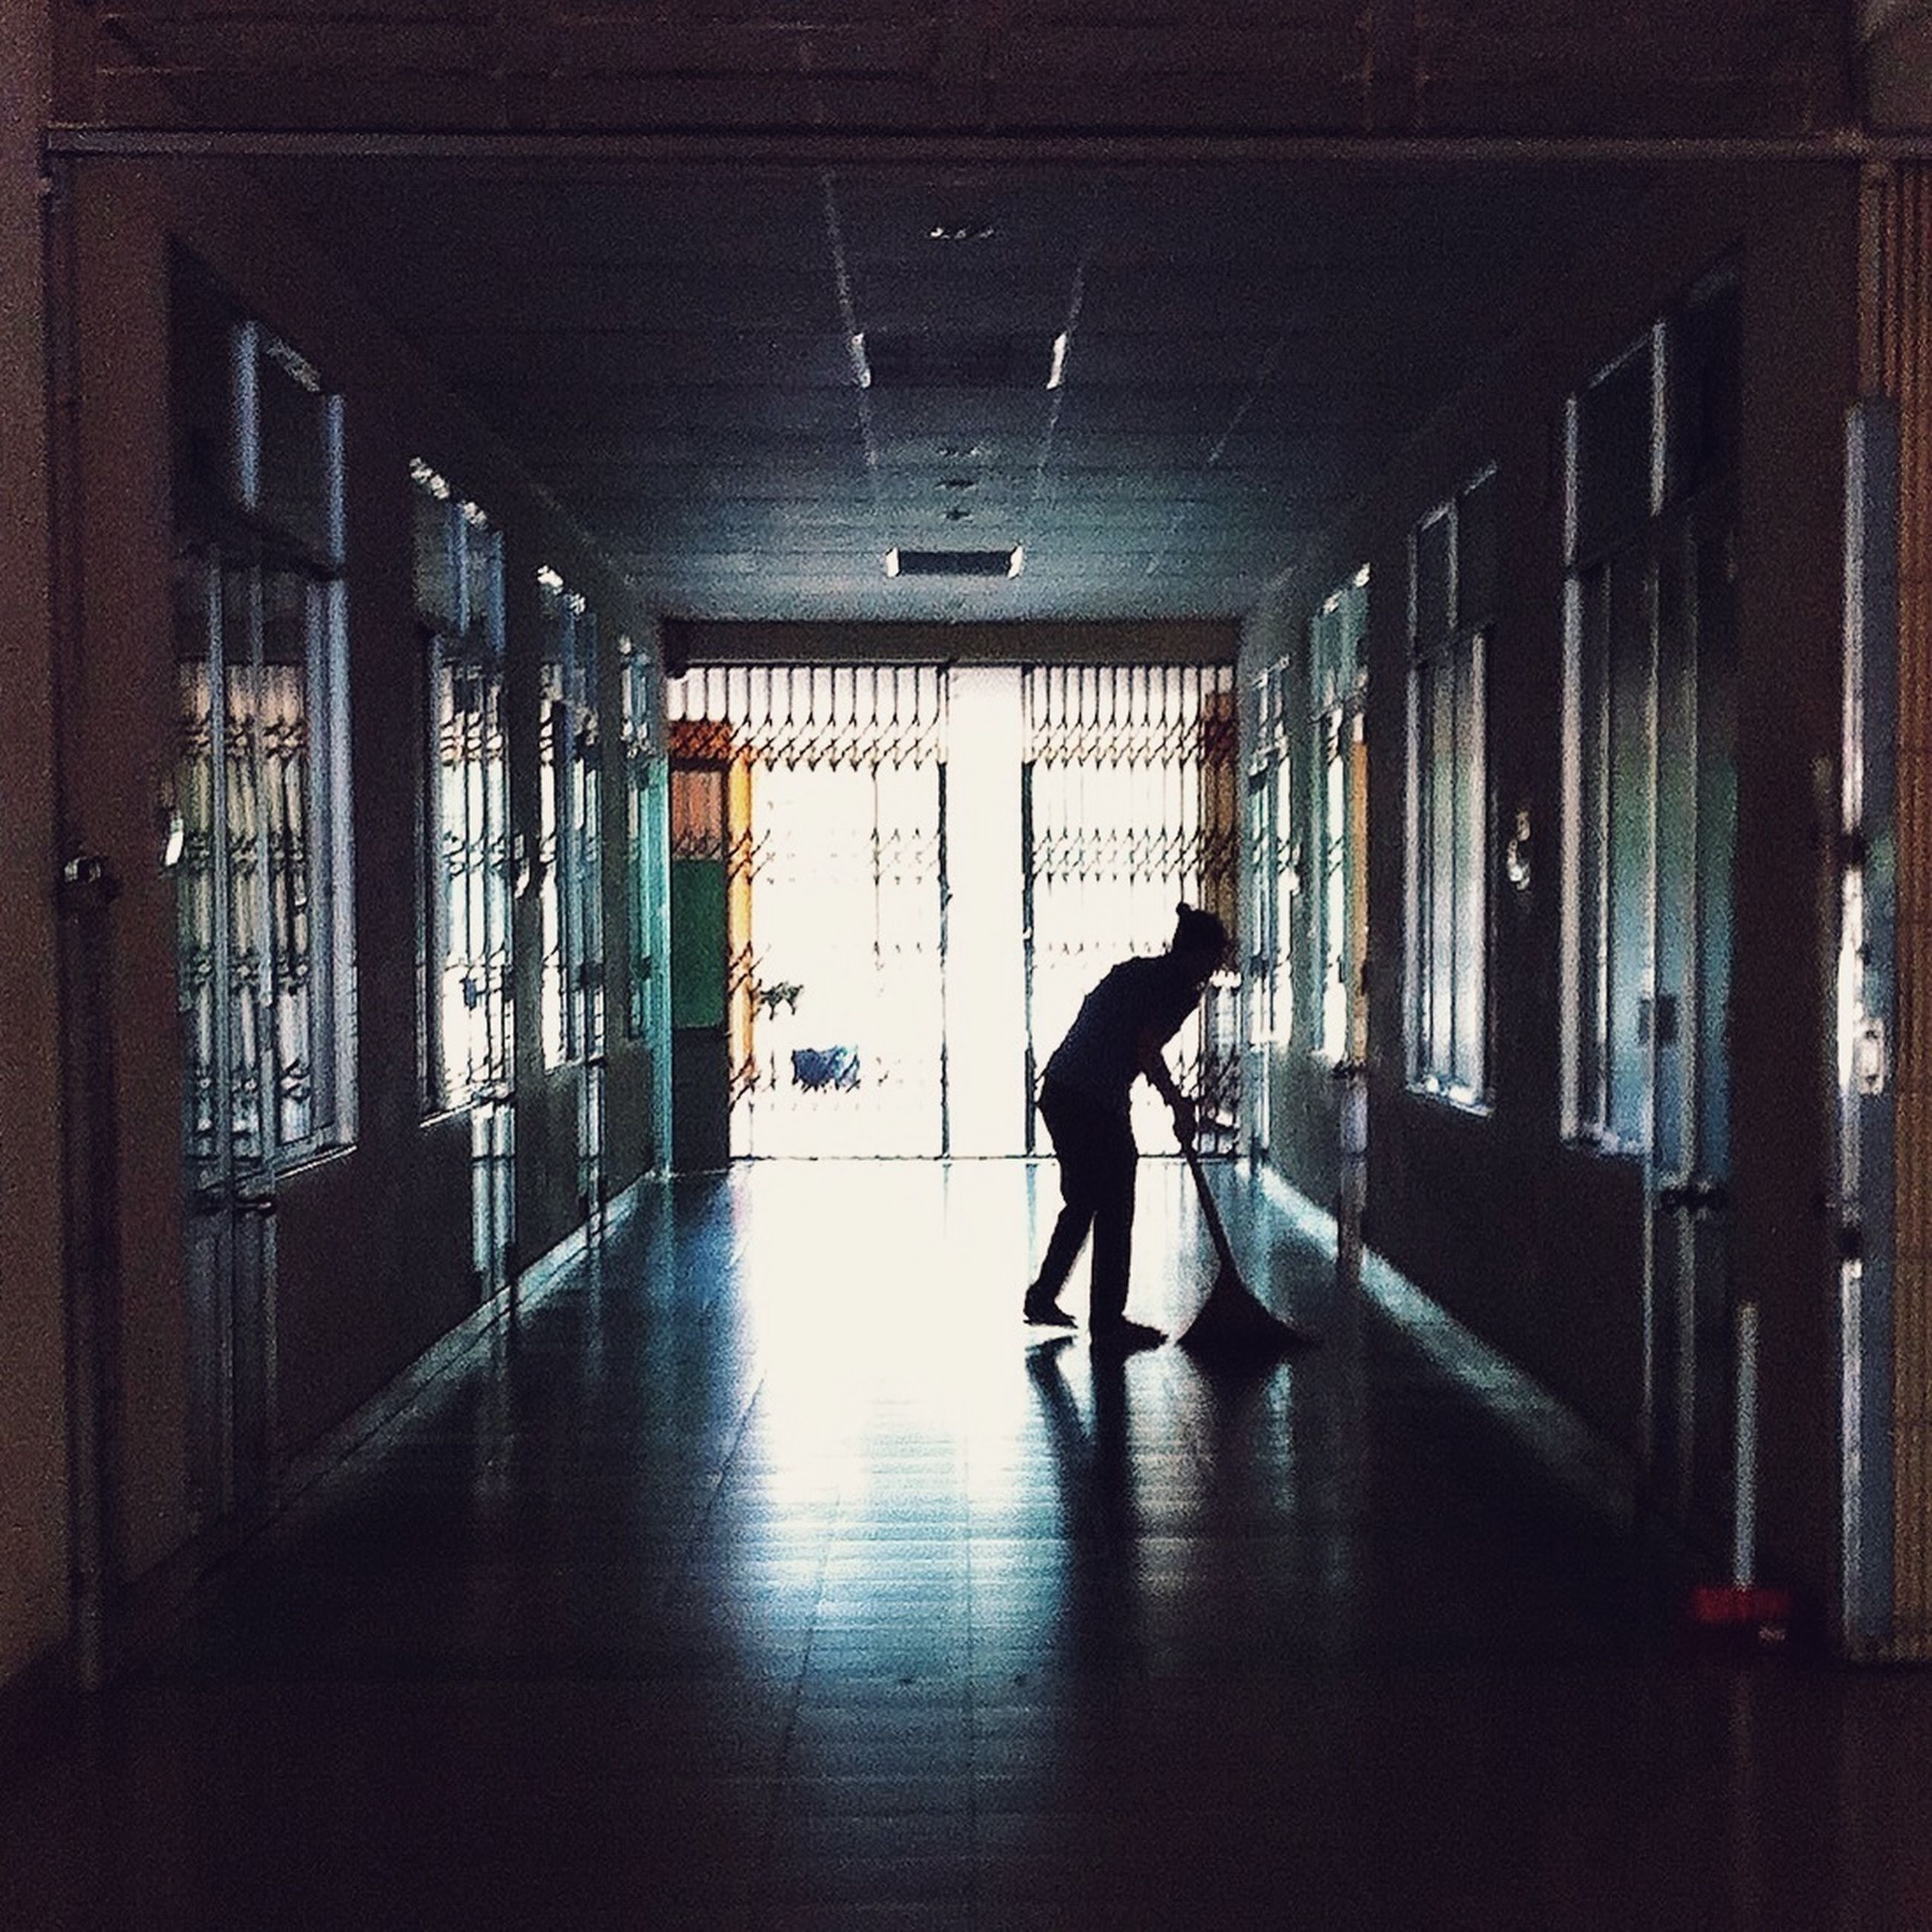 indoors, full length, architecture, lifestyles, built structure, walking, men, leisure activity, corridor, window, rear view, reflection, building, person, flooring, wall - building feature, silhouette, illuminated